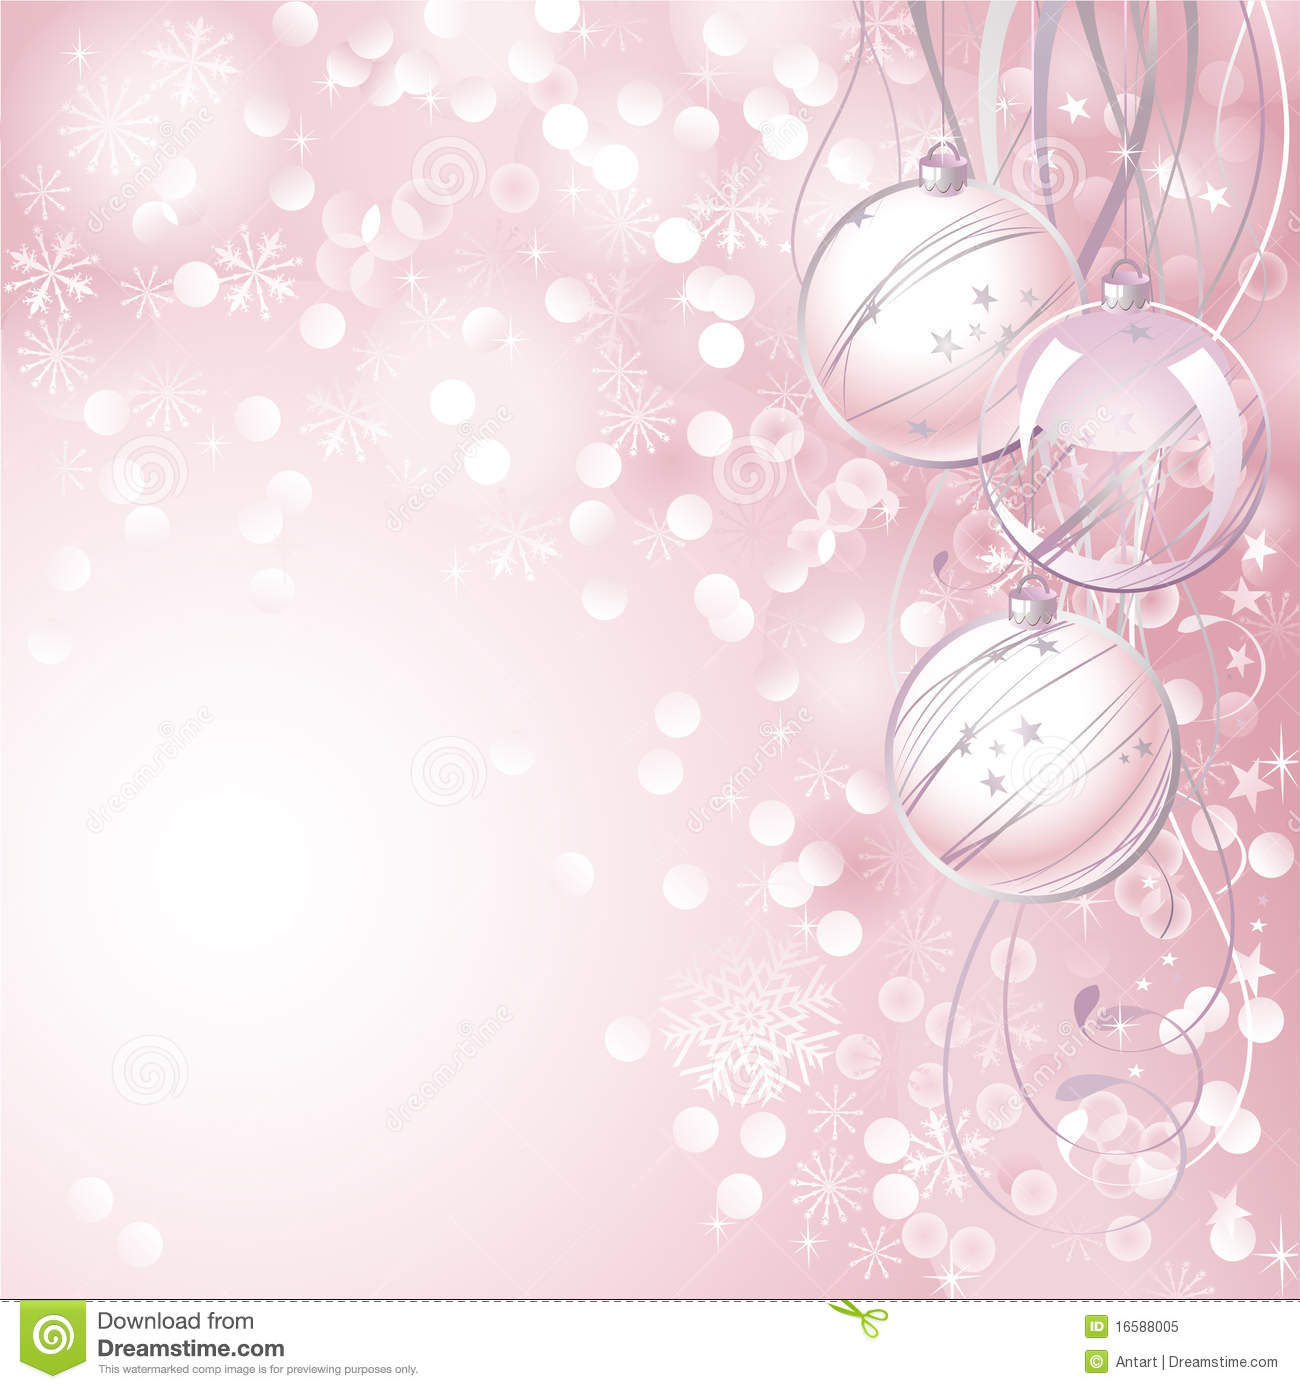 Pink Christmas Background Royalty Free Stock Photo - Image: 16588005